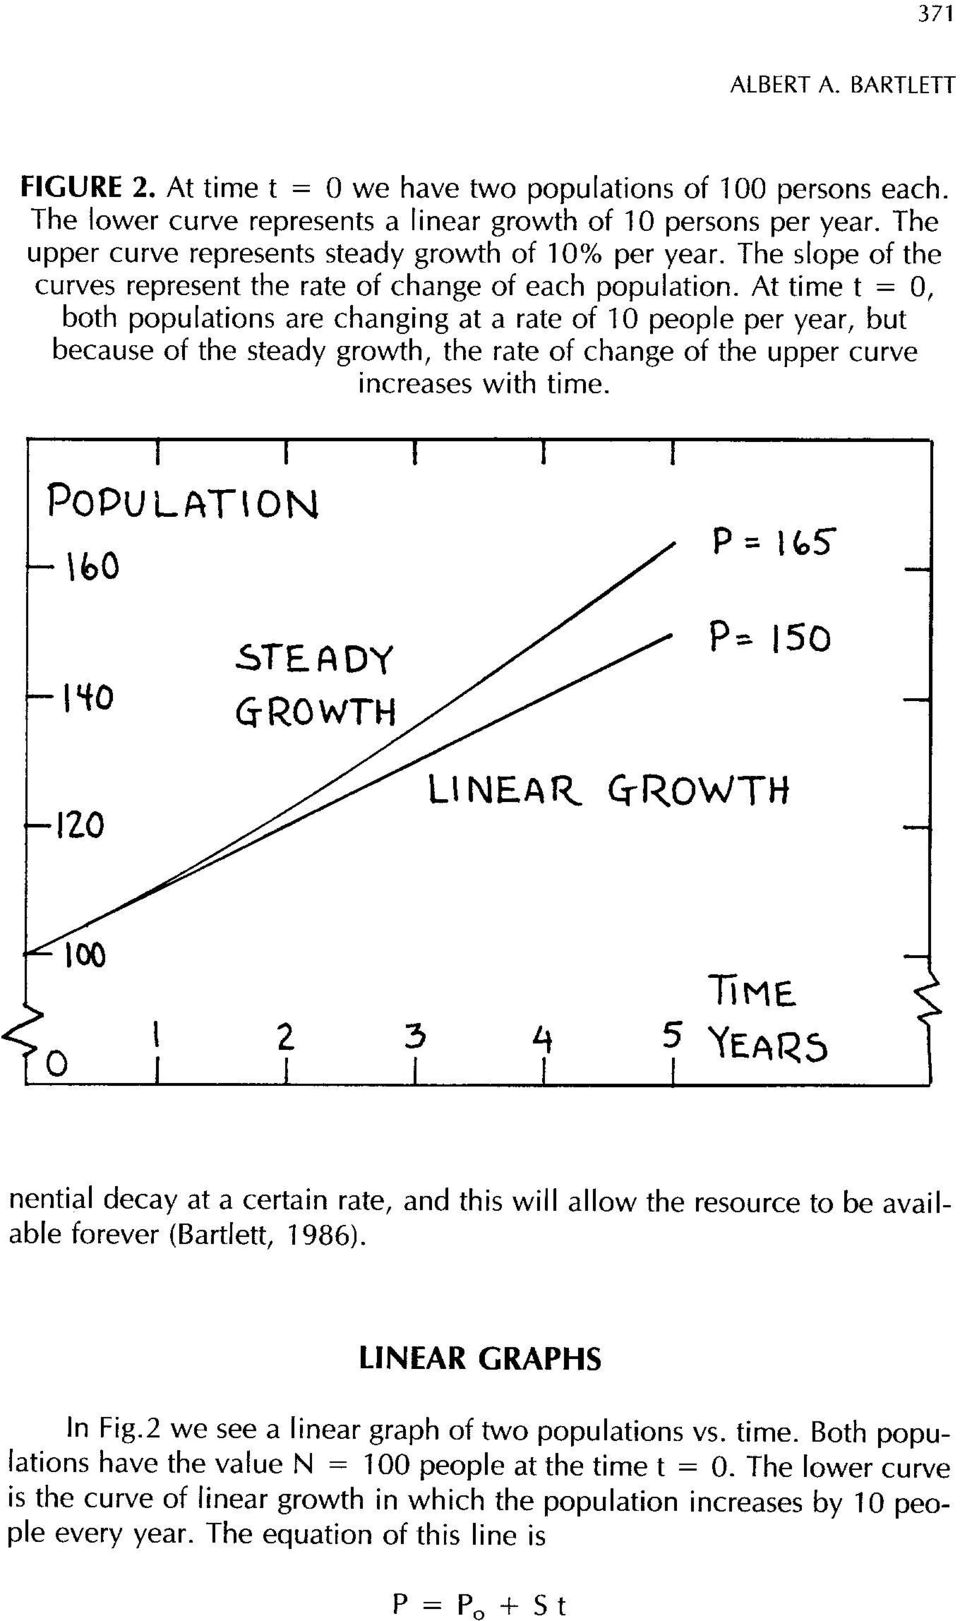 At time t = 0, both populations are changing at a rate of 10 people per year, but because of the steady growth, the rate of change of the upper curve increases with time.